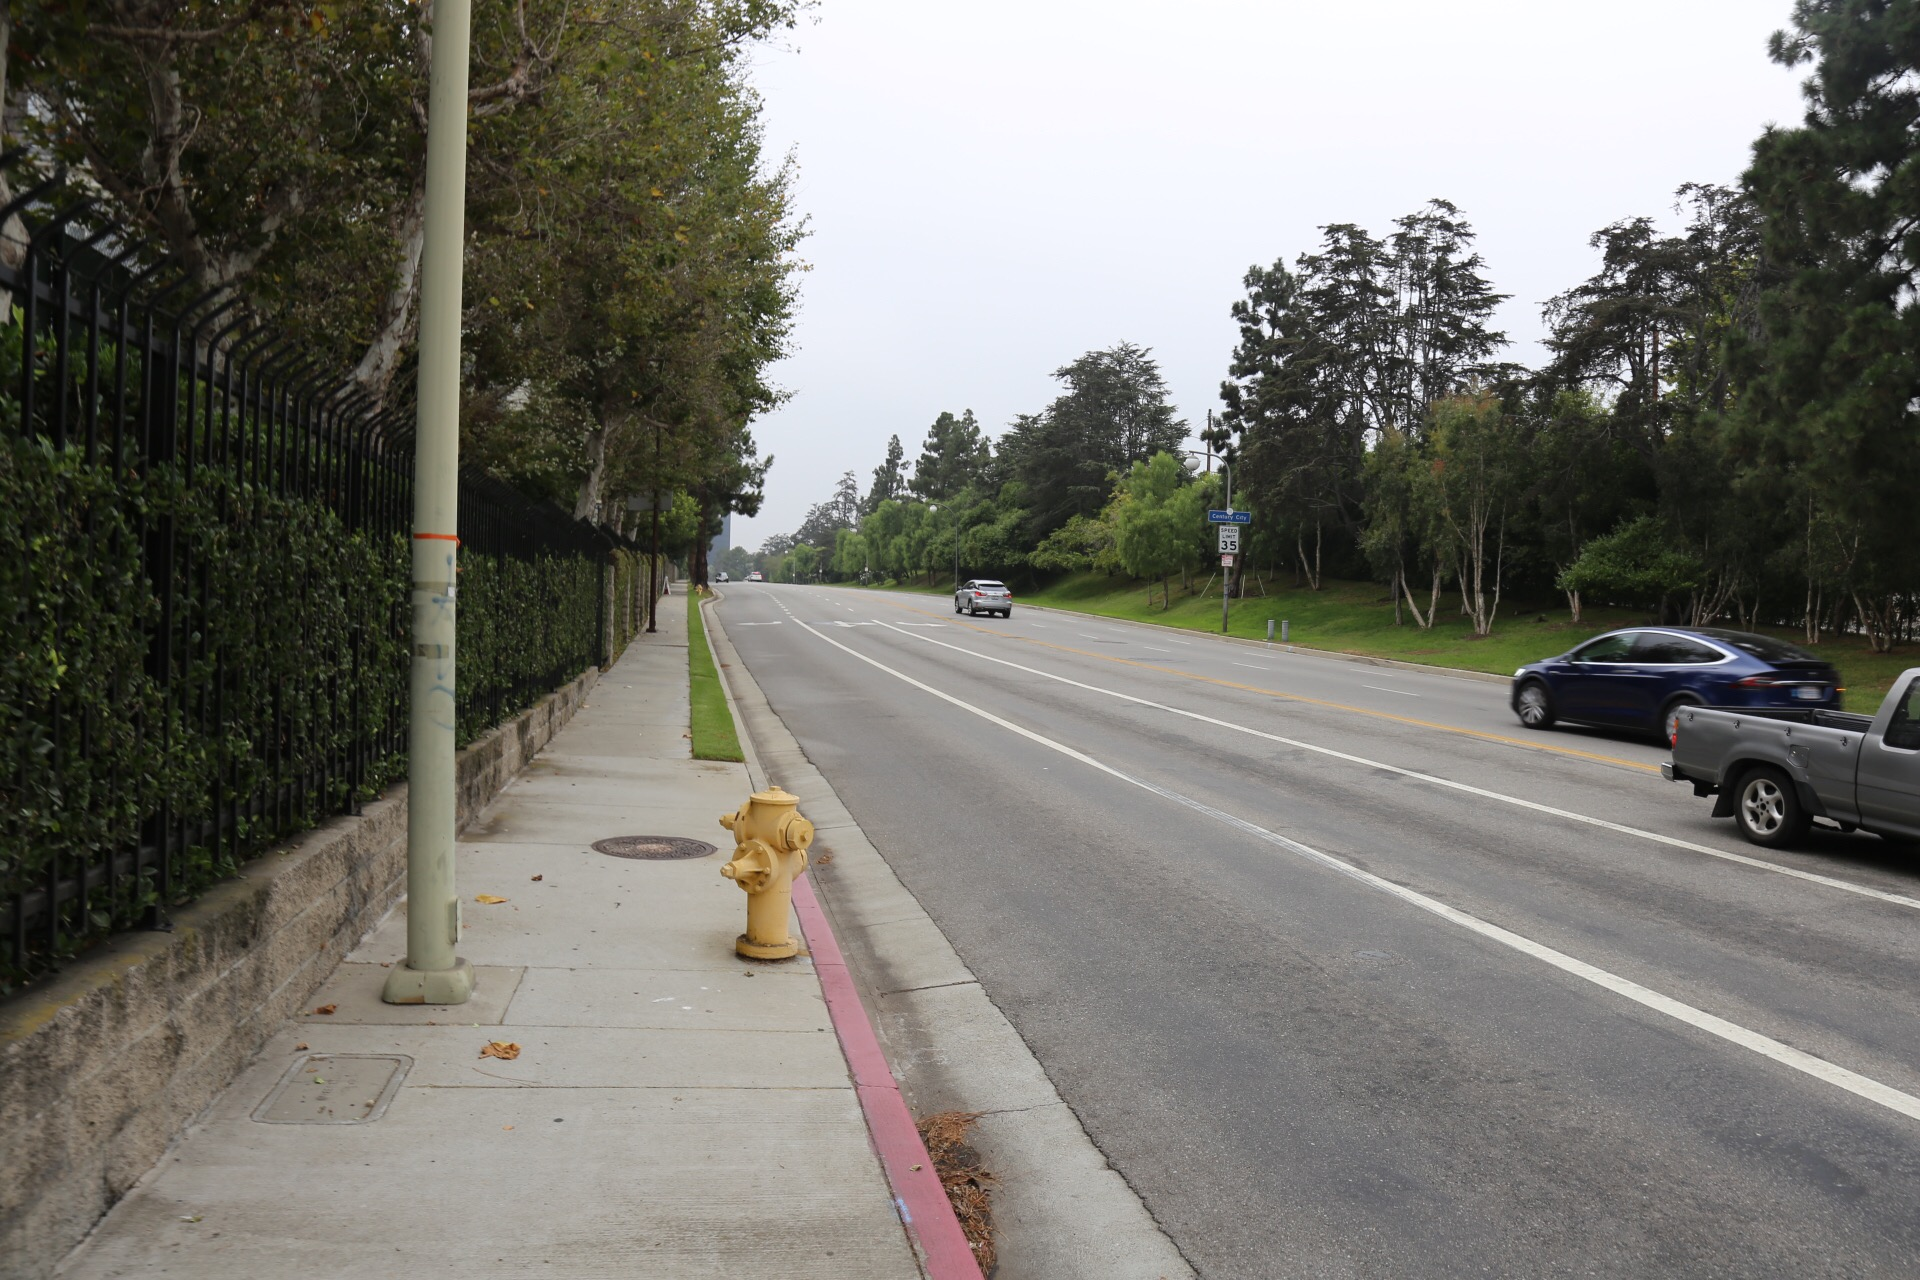 The 20 minute walk from Pico on Centrury Park E to Century City isn't exactly pedestrian or bike friendly.